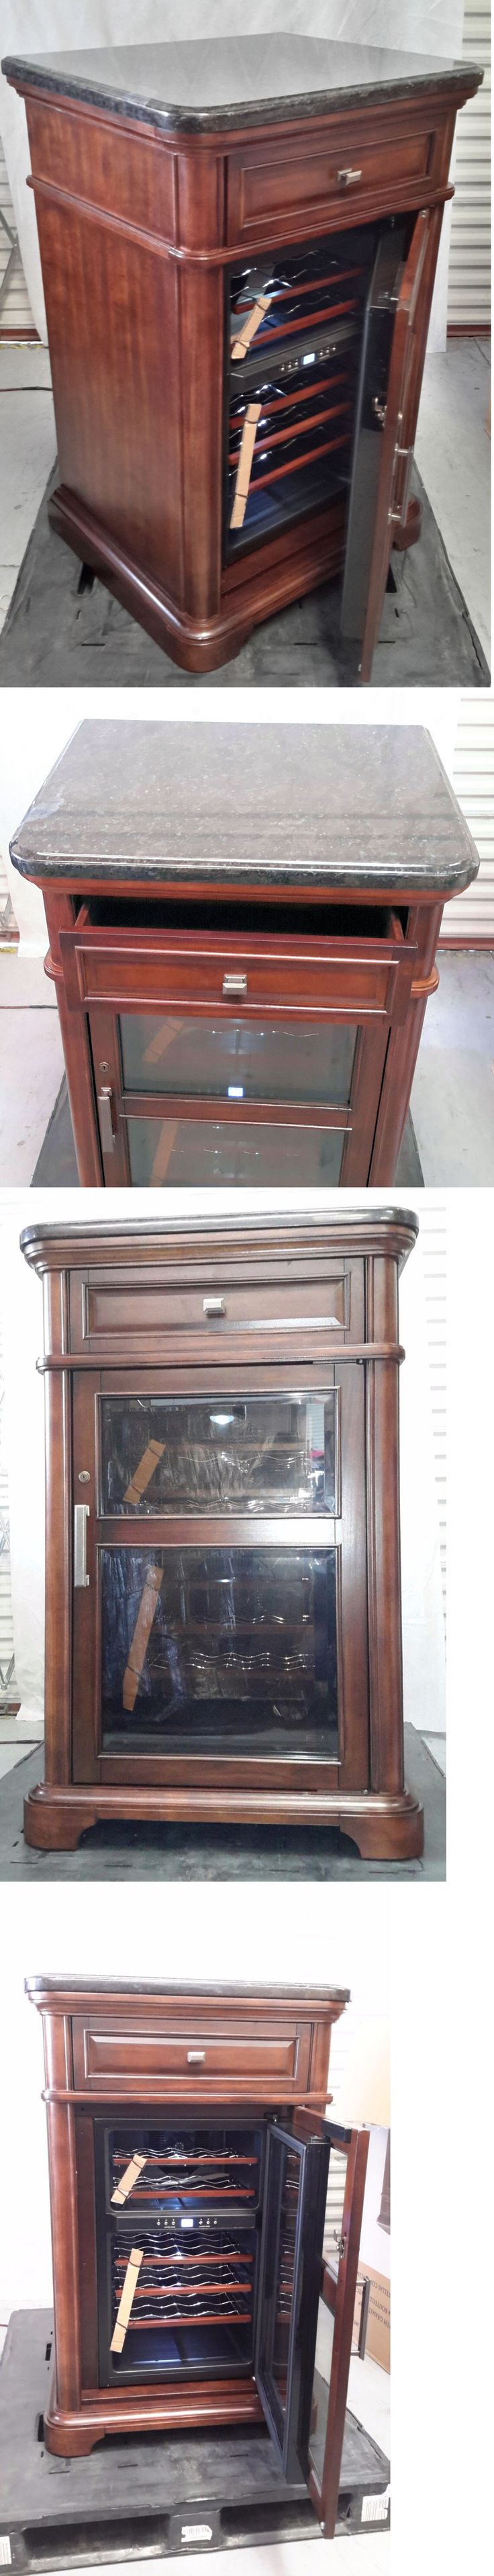 Wine Fridges and Cellars 177750: Tresanti 24 Bottle Dual Zone Wood Granite Wine Refrigerator Cooler Fridge New -> BUY IT NOW ONLY: $550 on eBay!